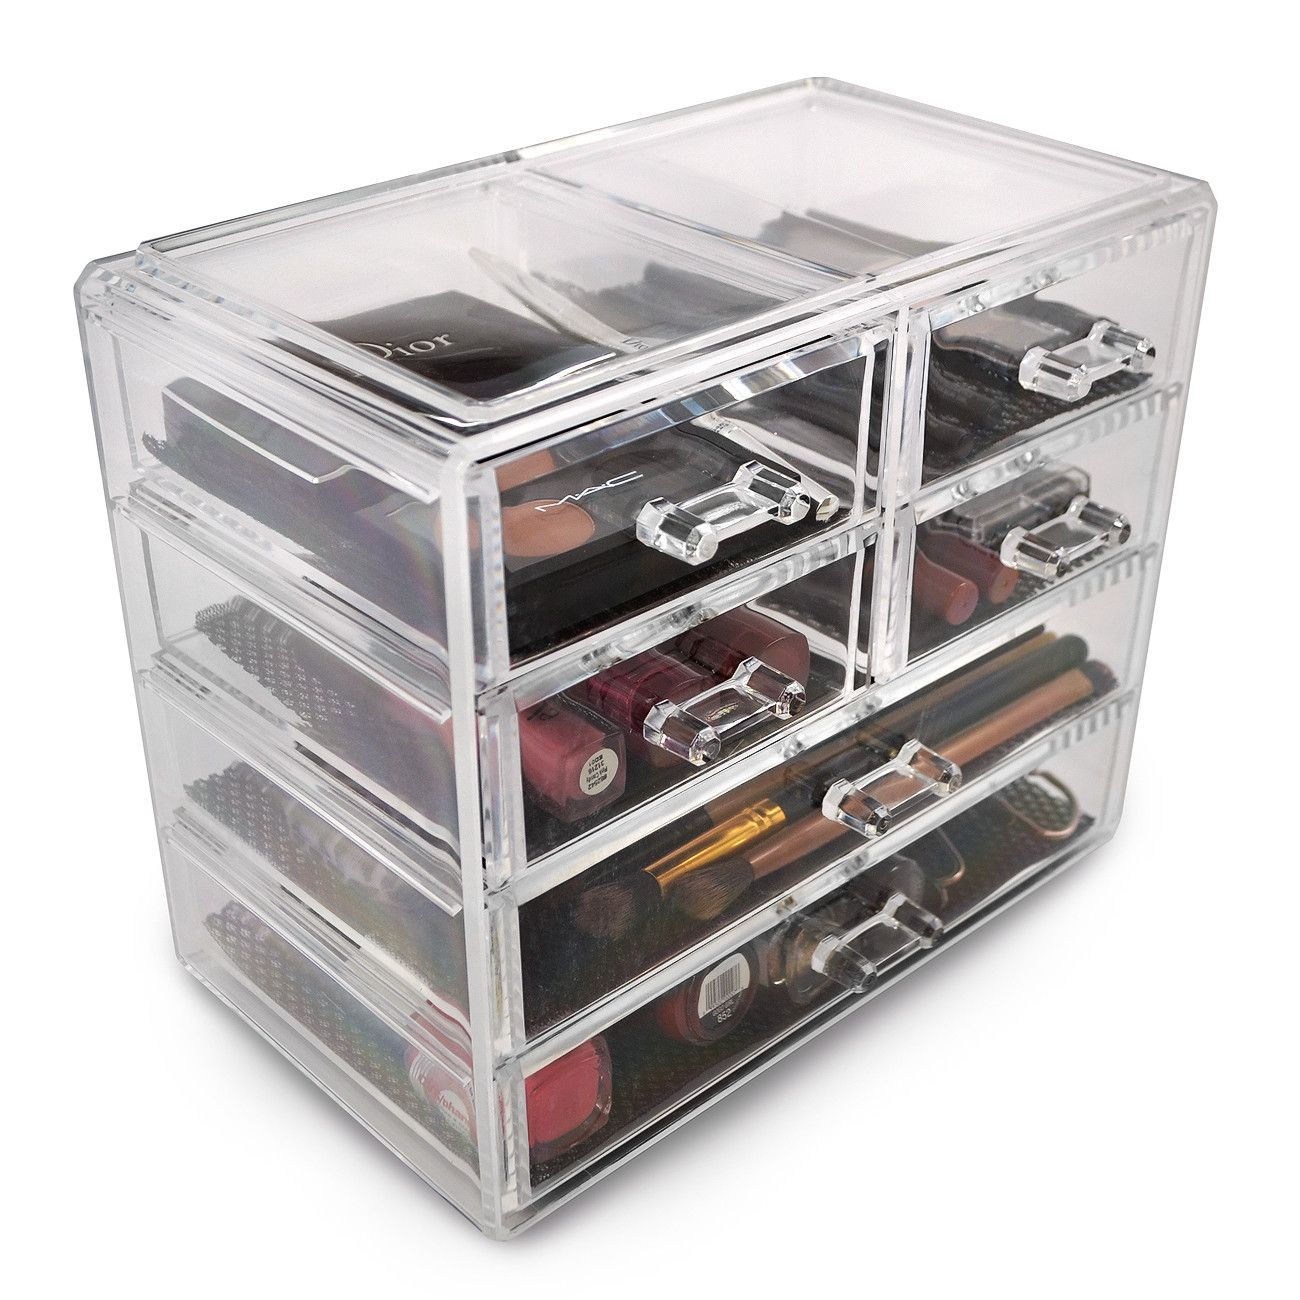 Shop Wayfair for Storage Drawers to match every style and budget